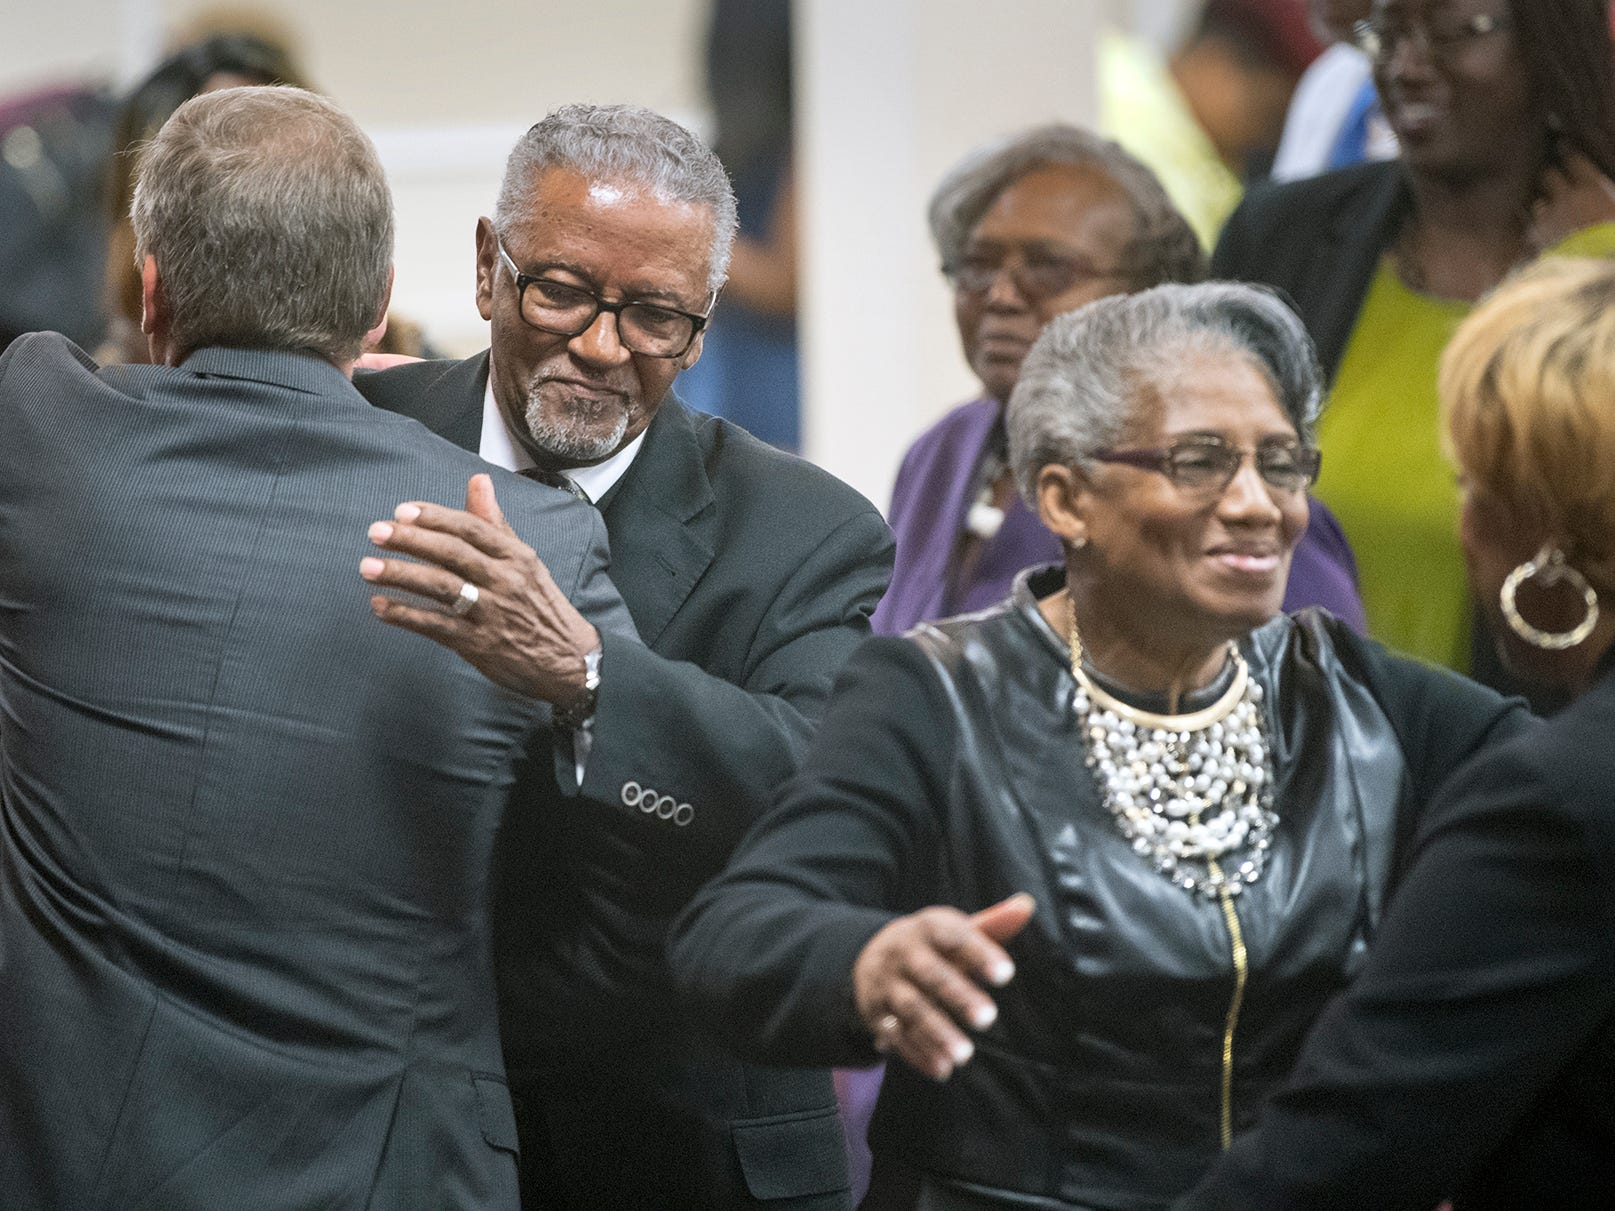 From the left, York Mayor Michael Helfrich hugs Bishop Carl H. Scot, while his wife Diane hugs State Rep. Carol Hill Evans, during the Bishop Carl H. Scott Street Naming Ceremony at Bible Tabernacle Church.